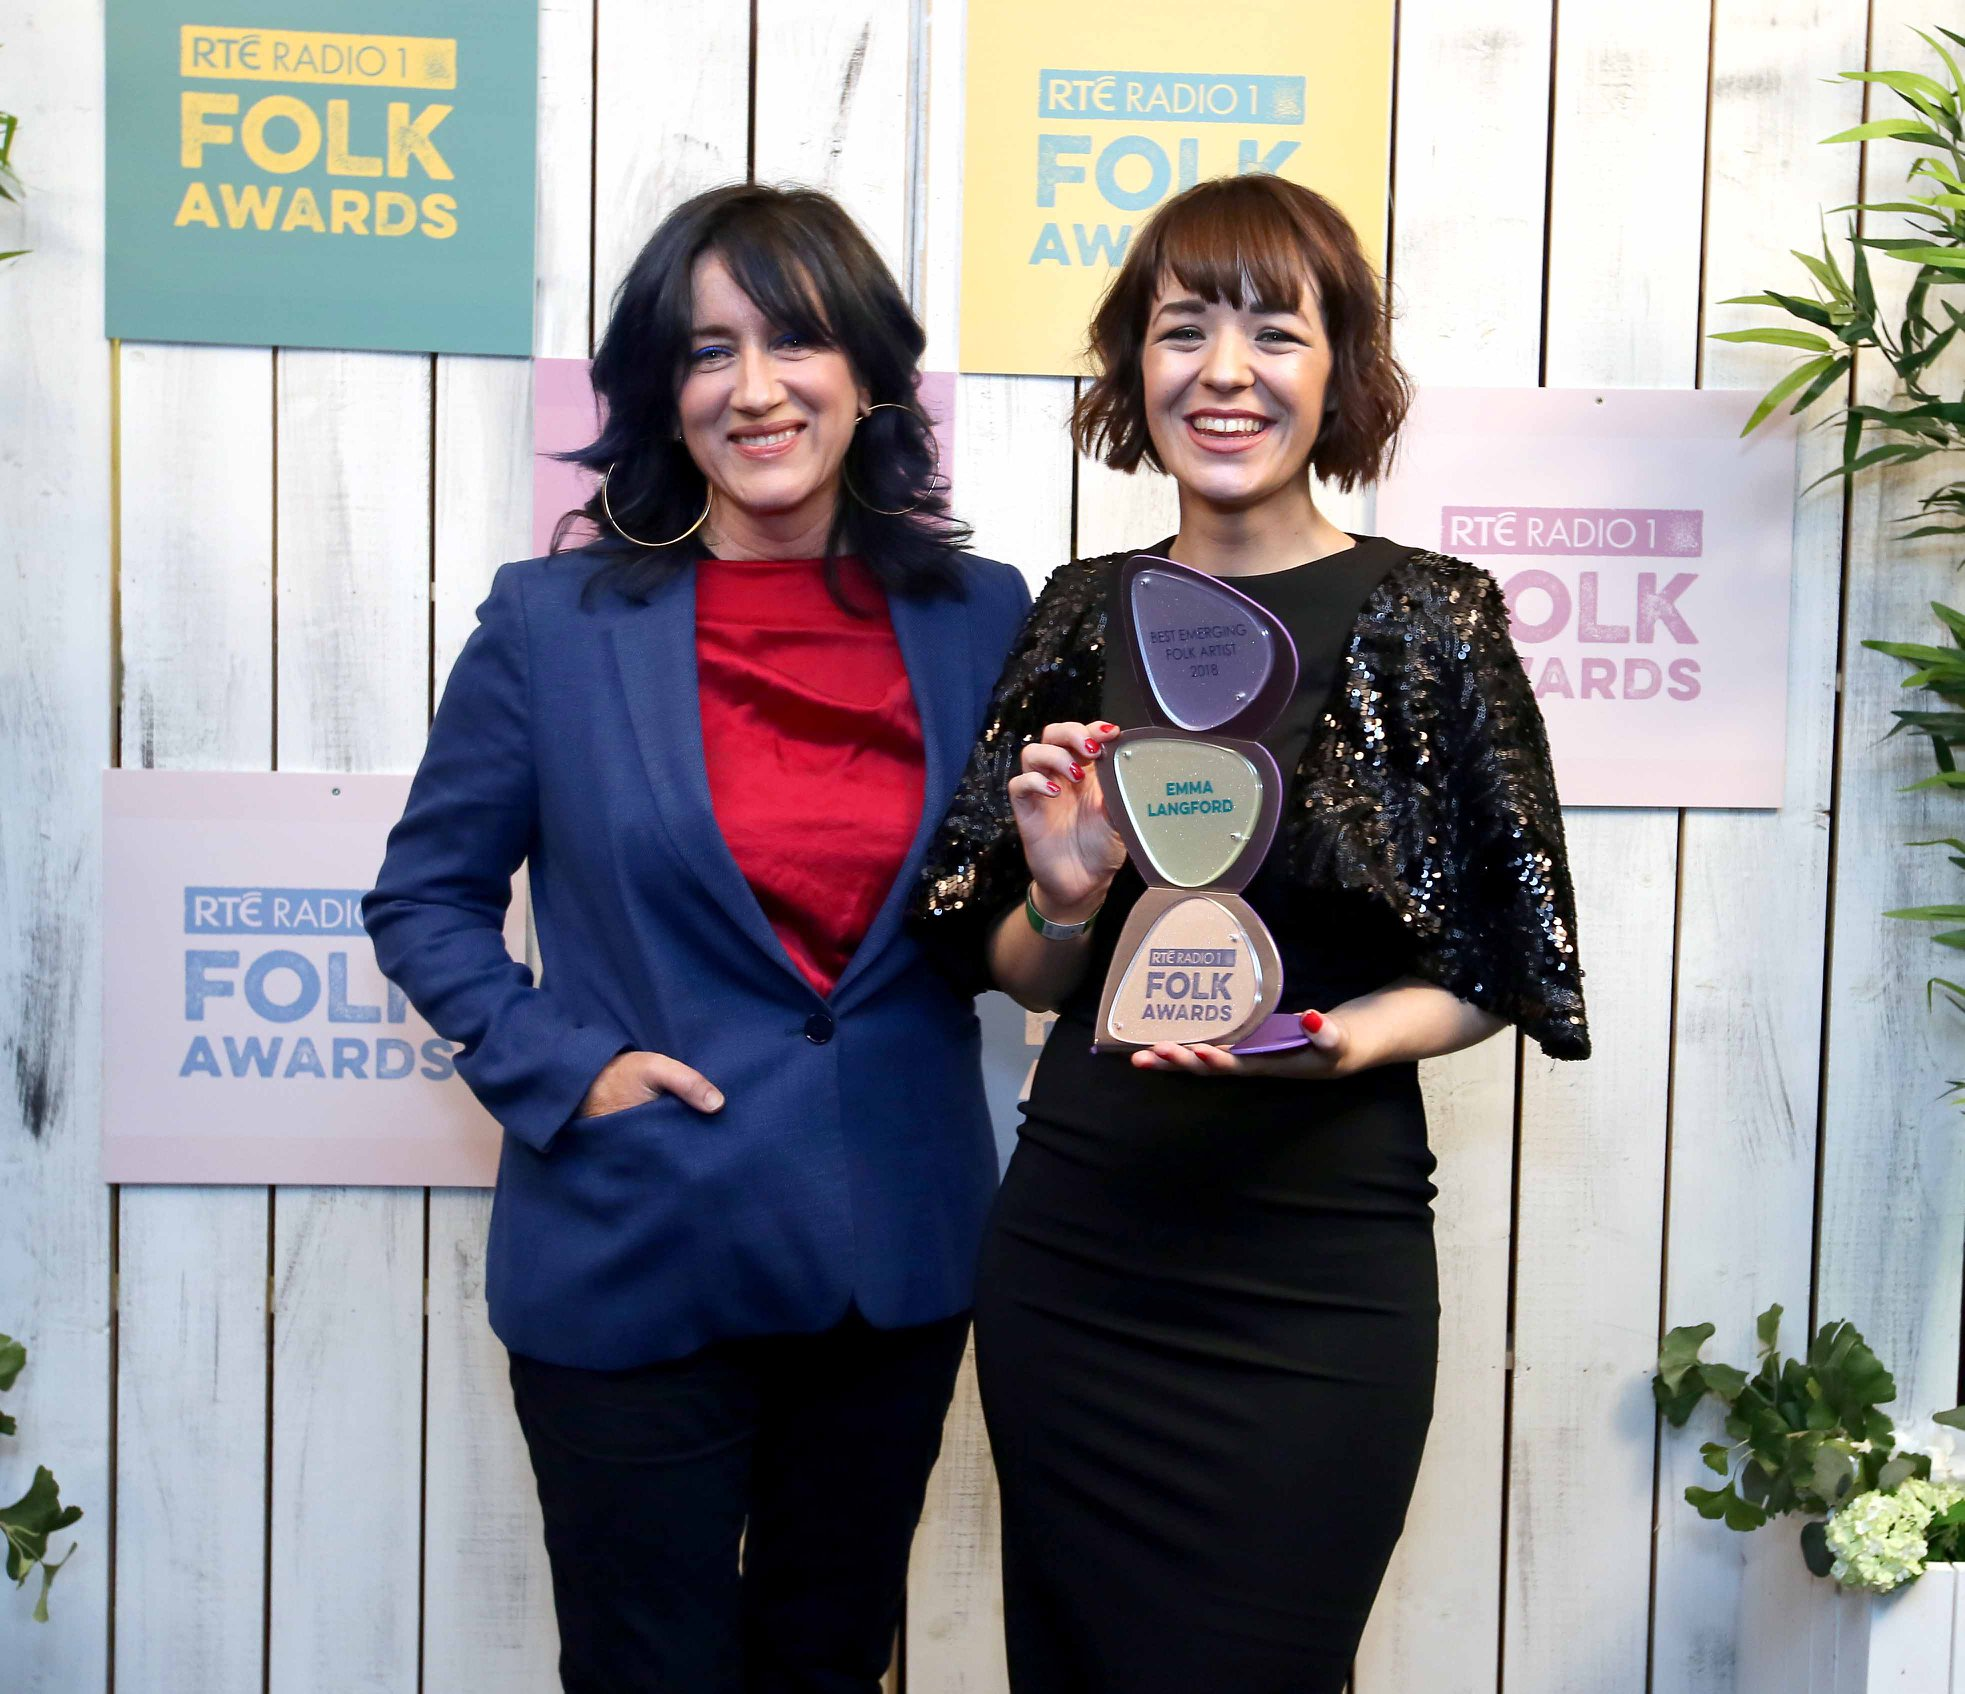 Emma Langford wins RTE Folk Awards